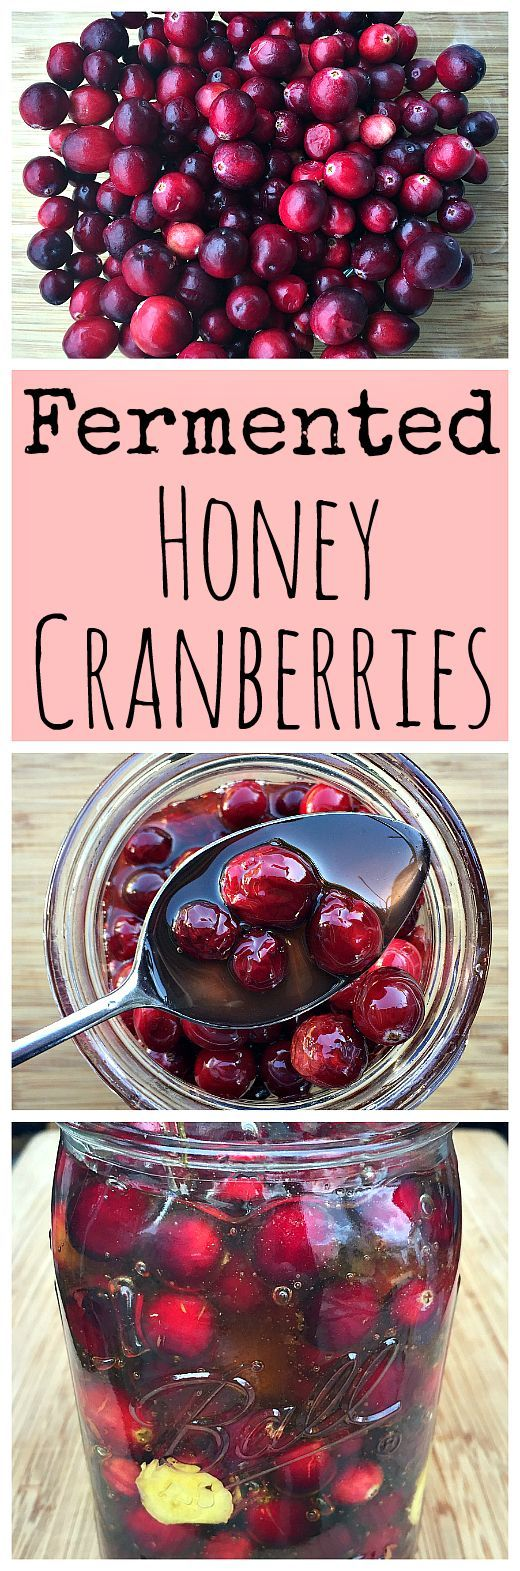 Ferment some cranberries in honey for a tasty holiday treat!